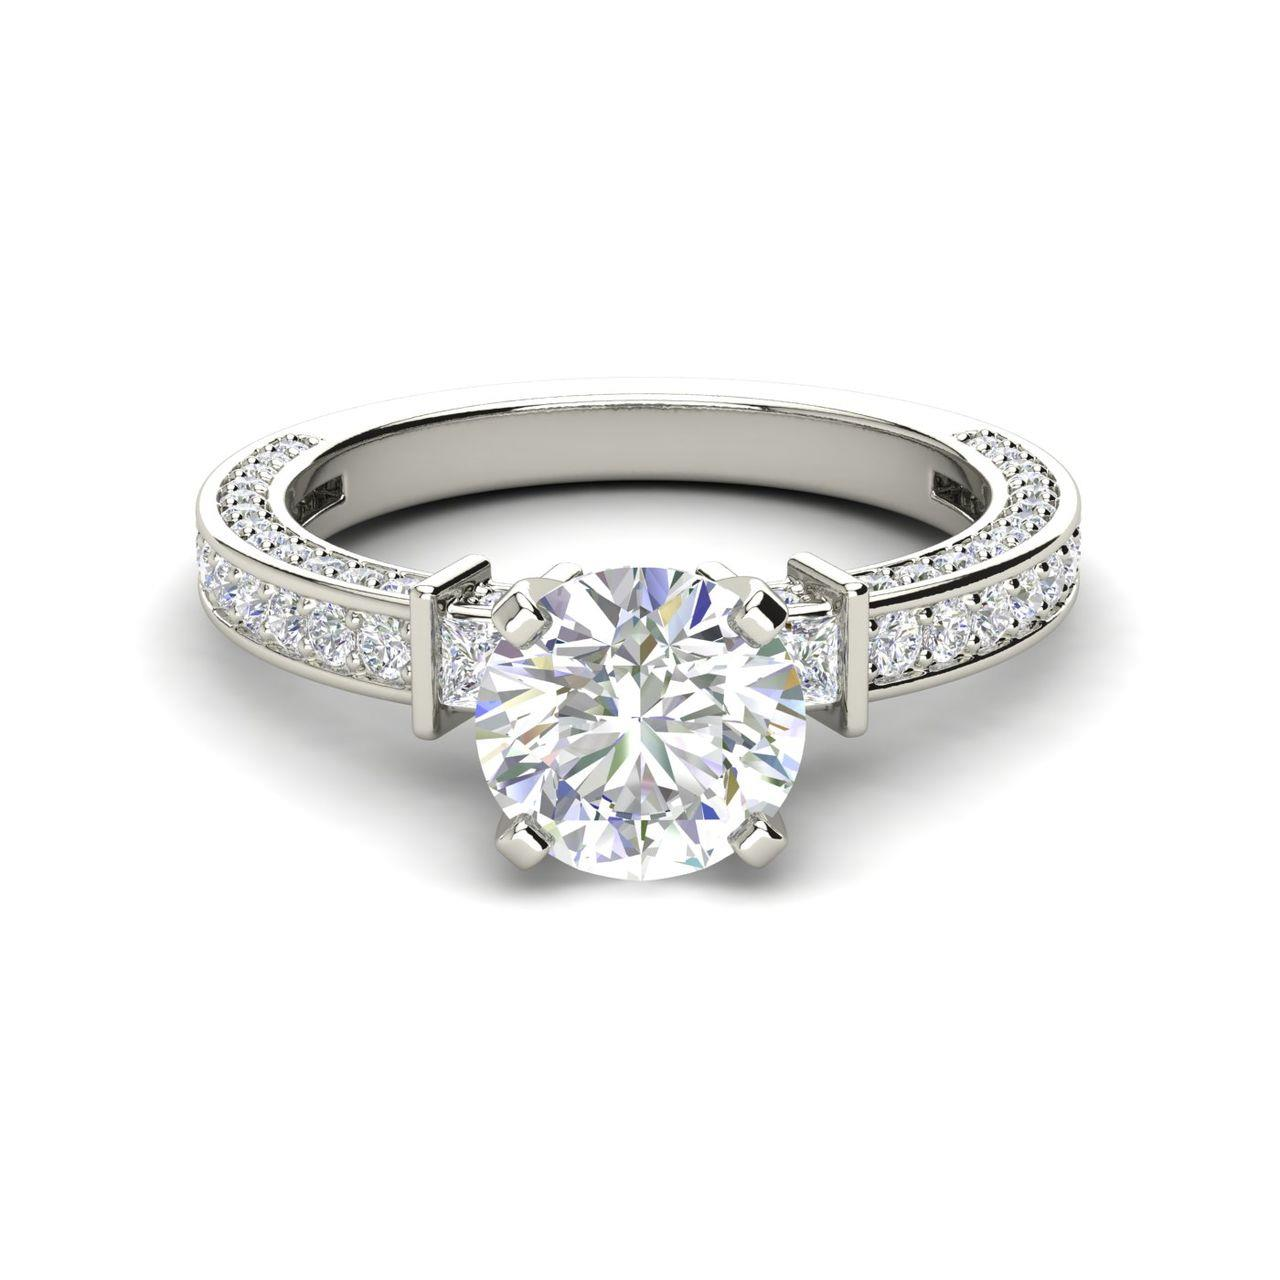 Three Sided Pave 1.35 Carat Round Cut Diamond Engagement Ring